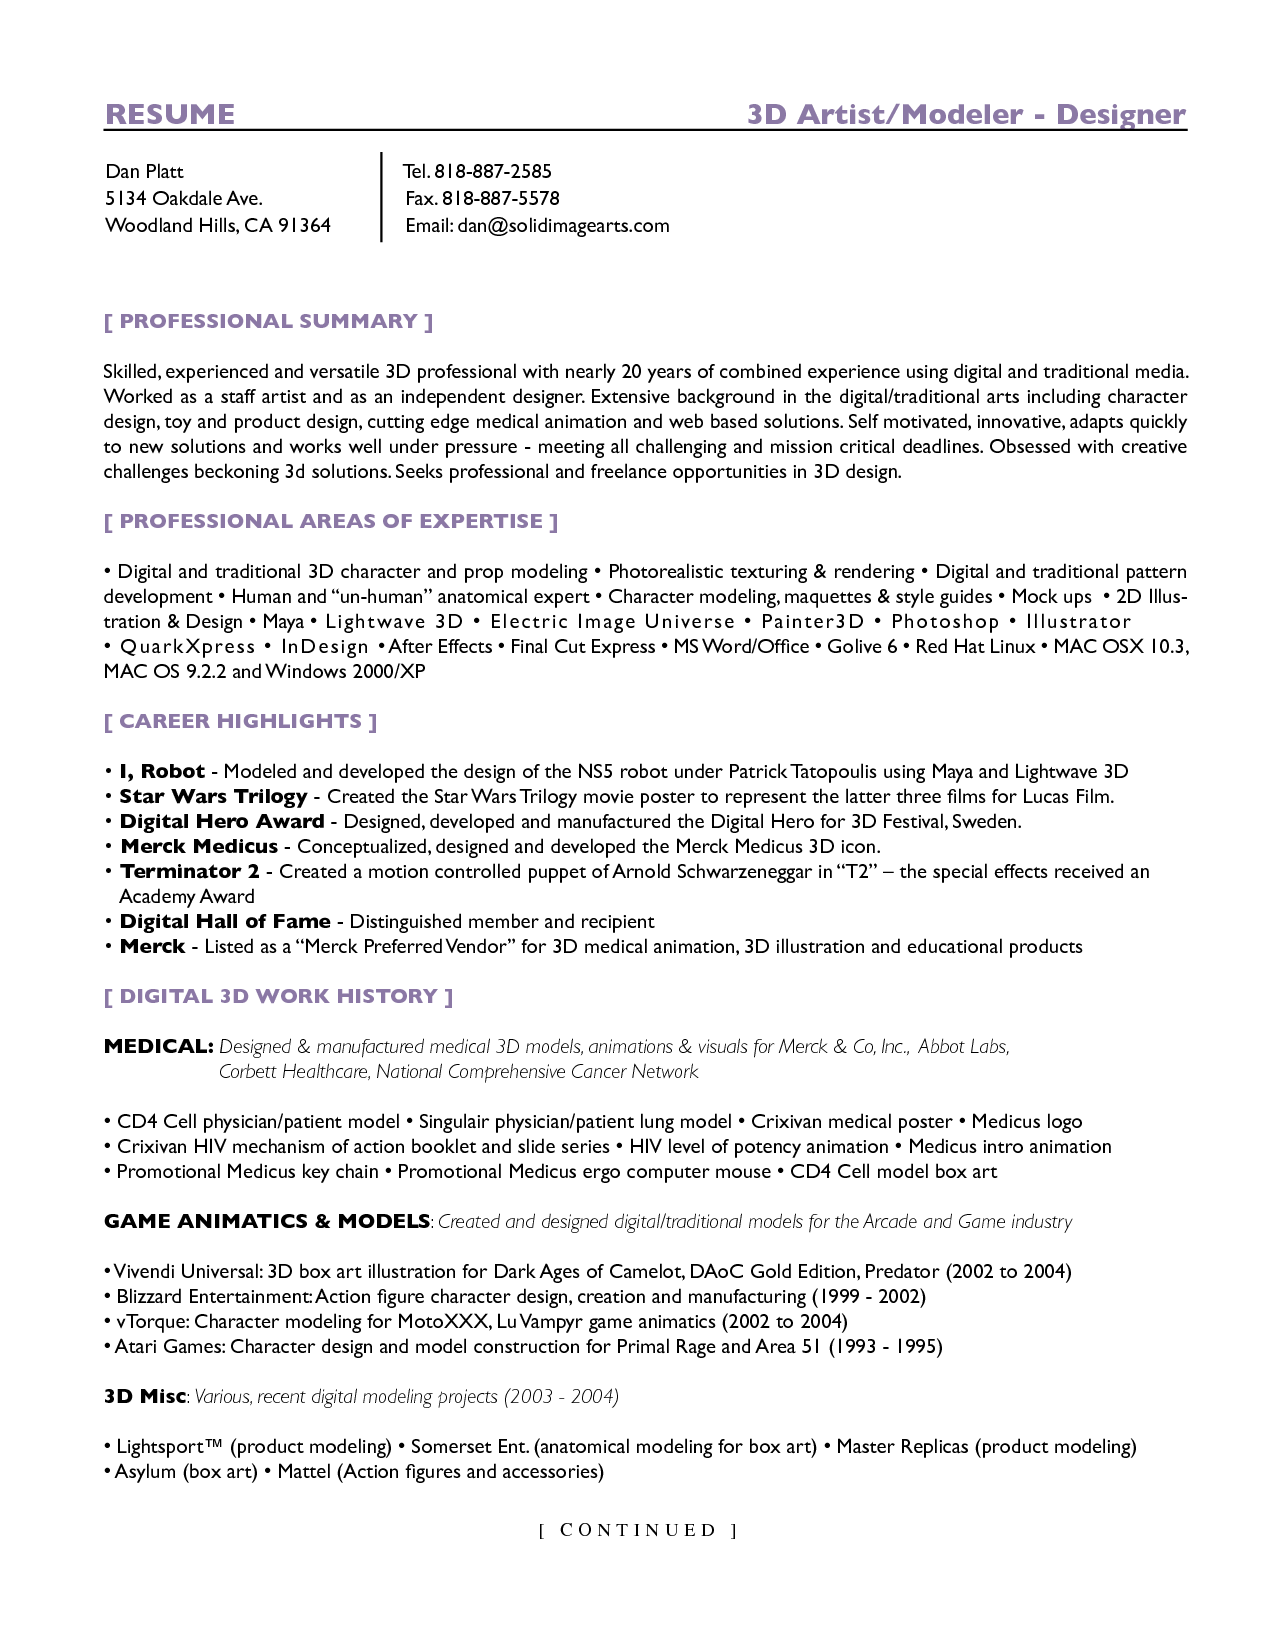 Artist Resume Template Enchanting Sample Resume  Sculpting  Pinterest  Sample Resume And Template